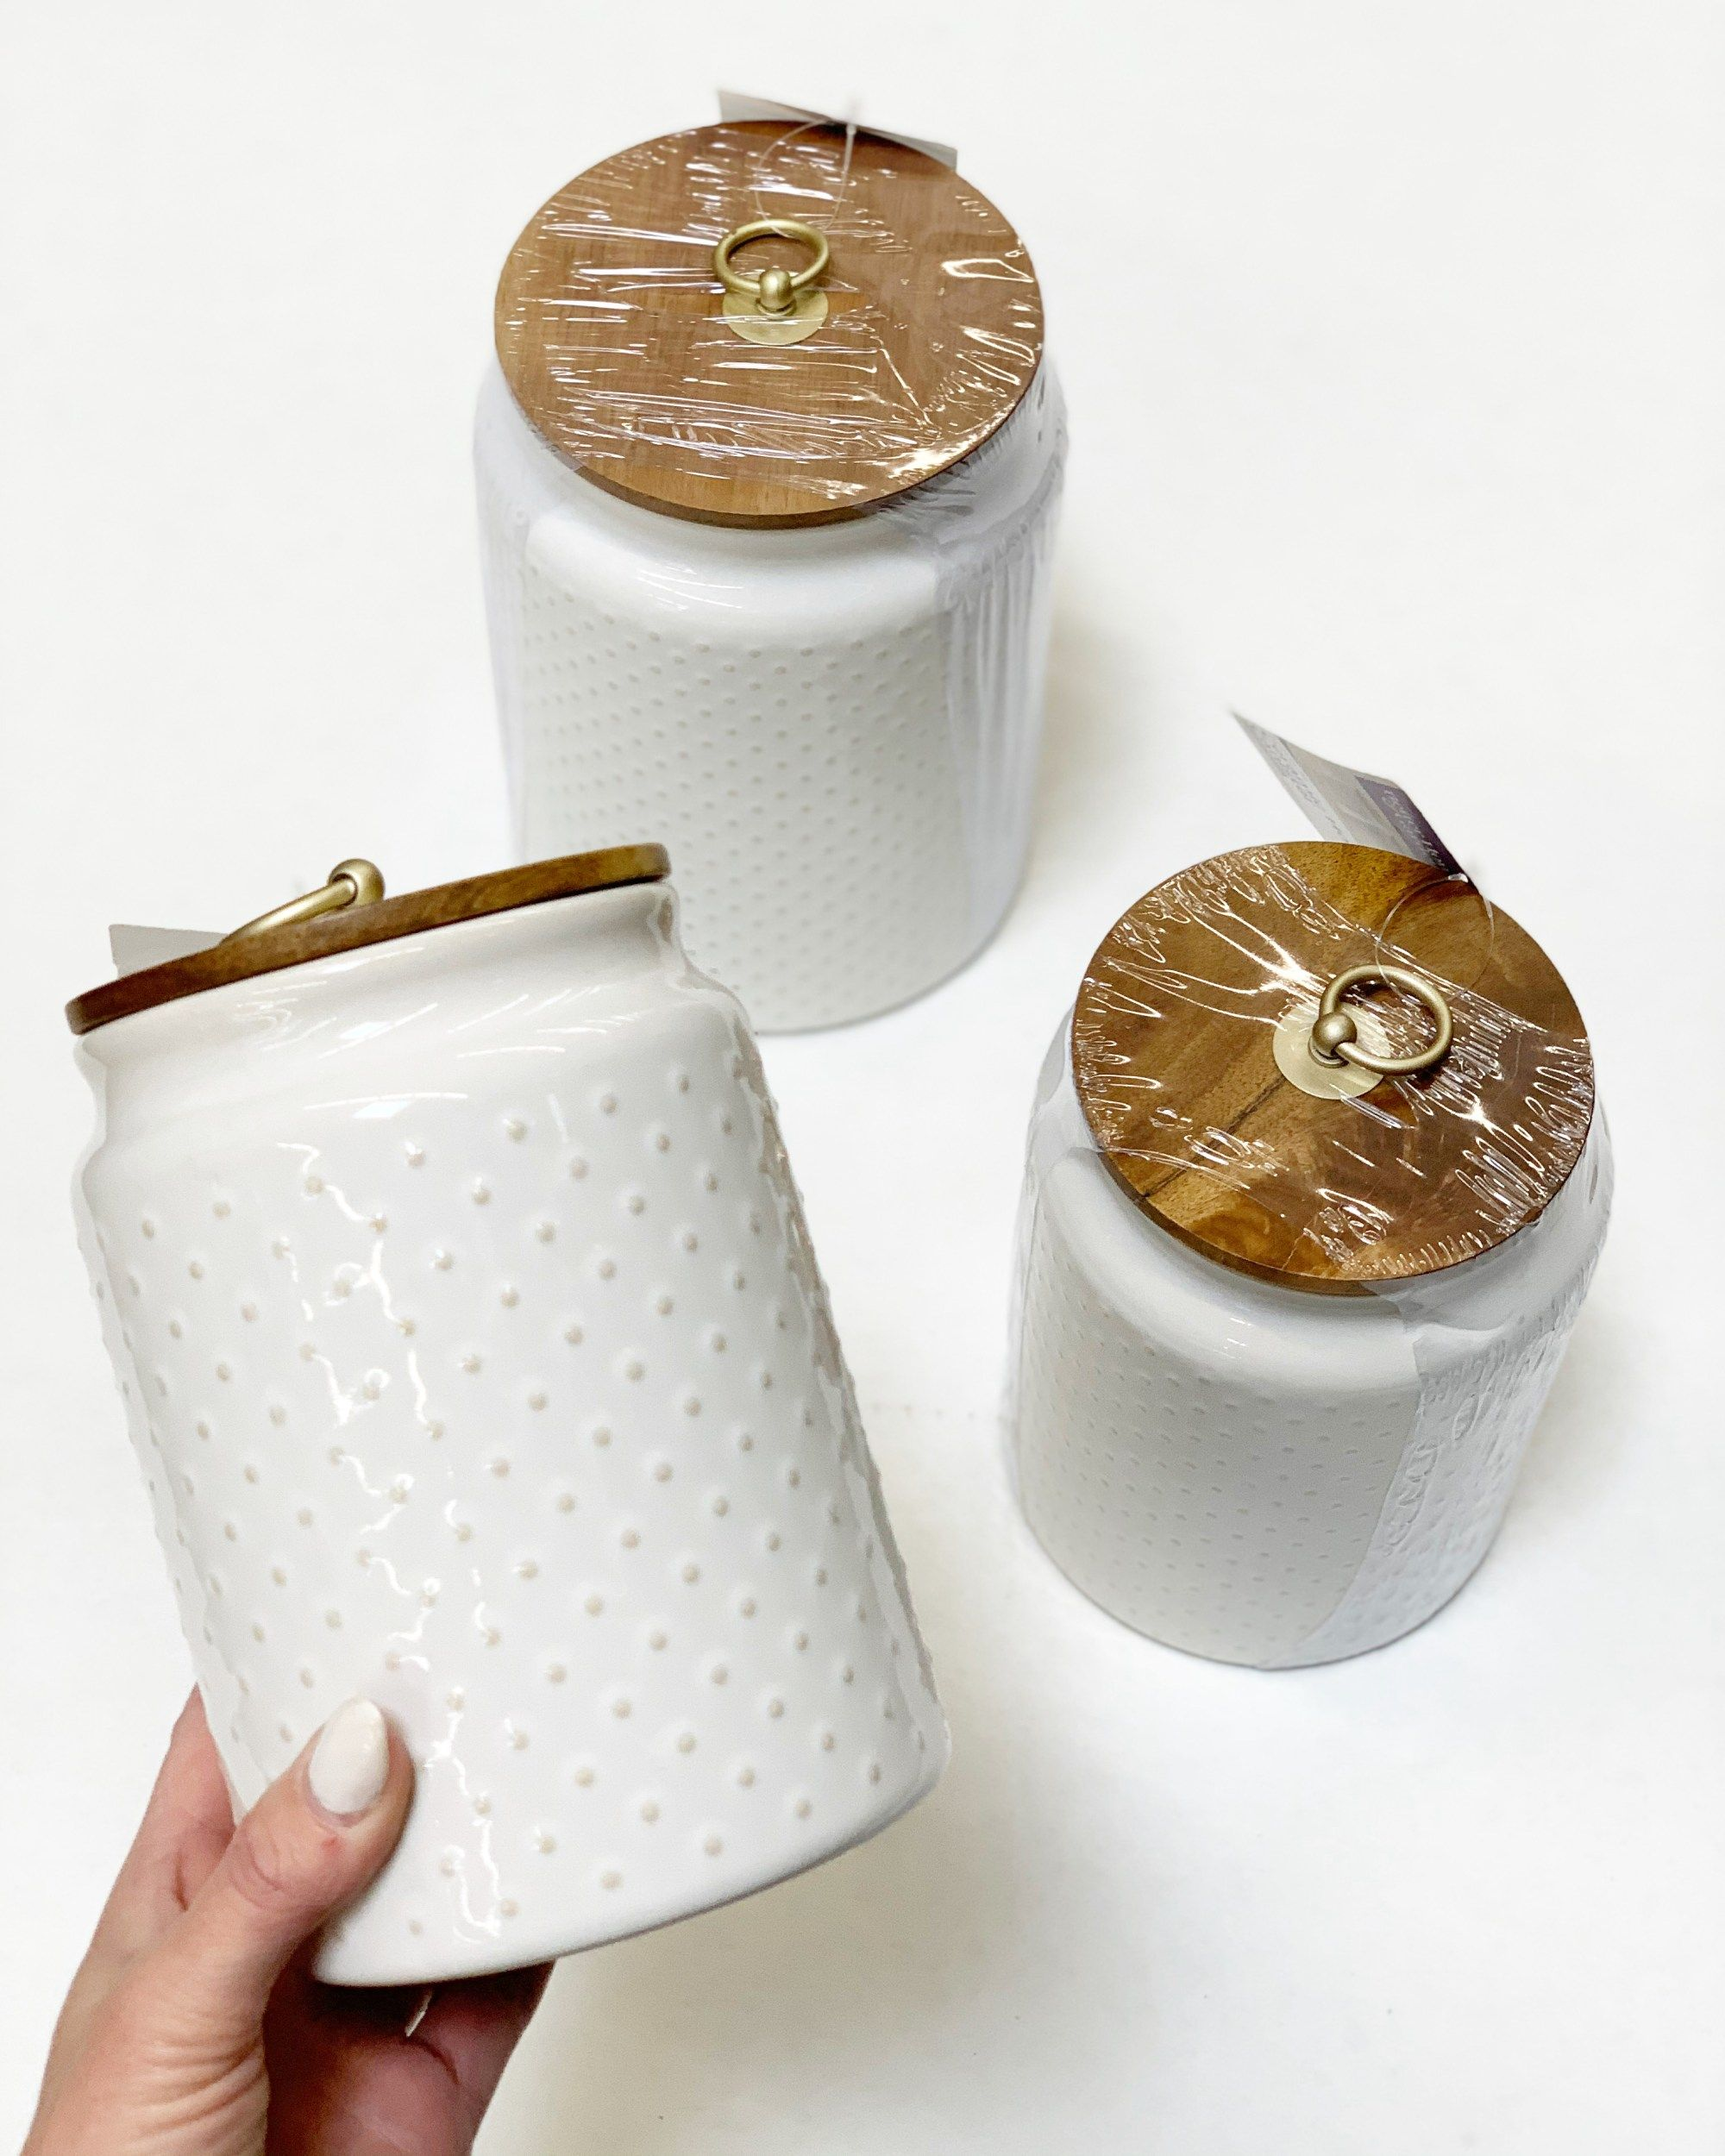 Better Homes And Gardens Hobnail Canisters Walmart Finds Walmart Finds Walmart Home Walmart Home Decor